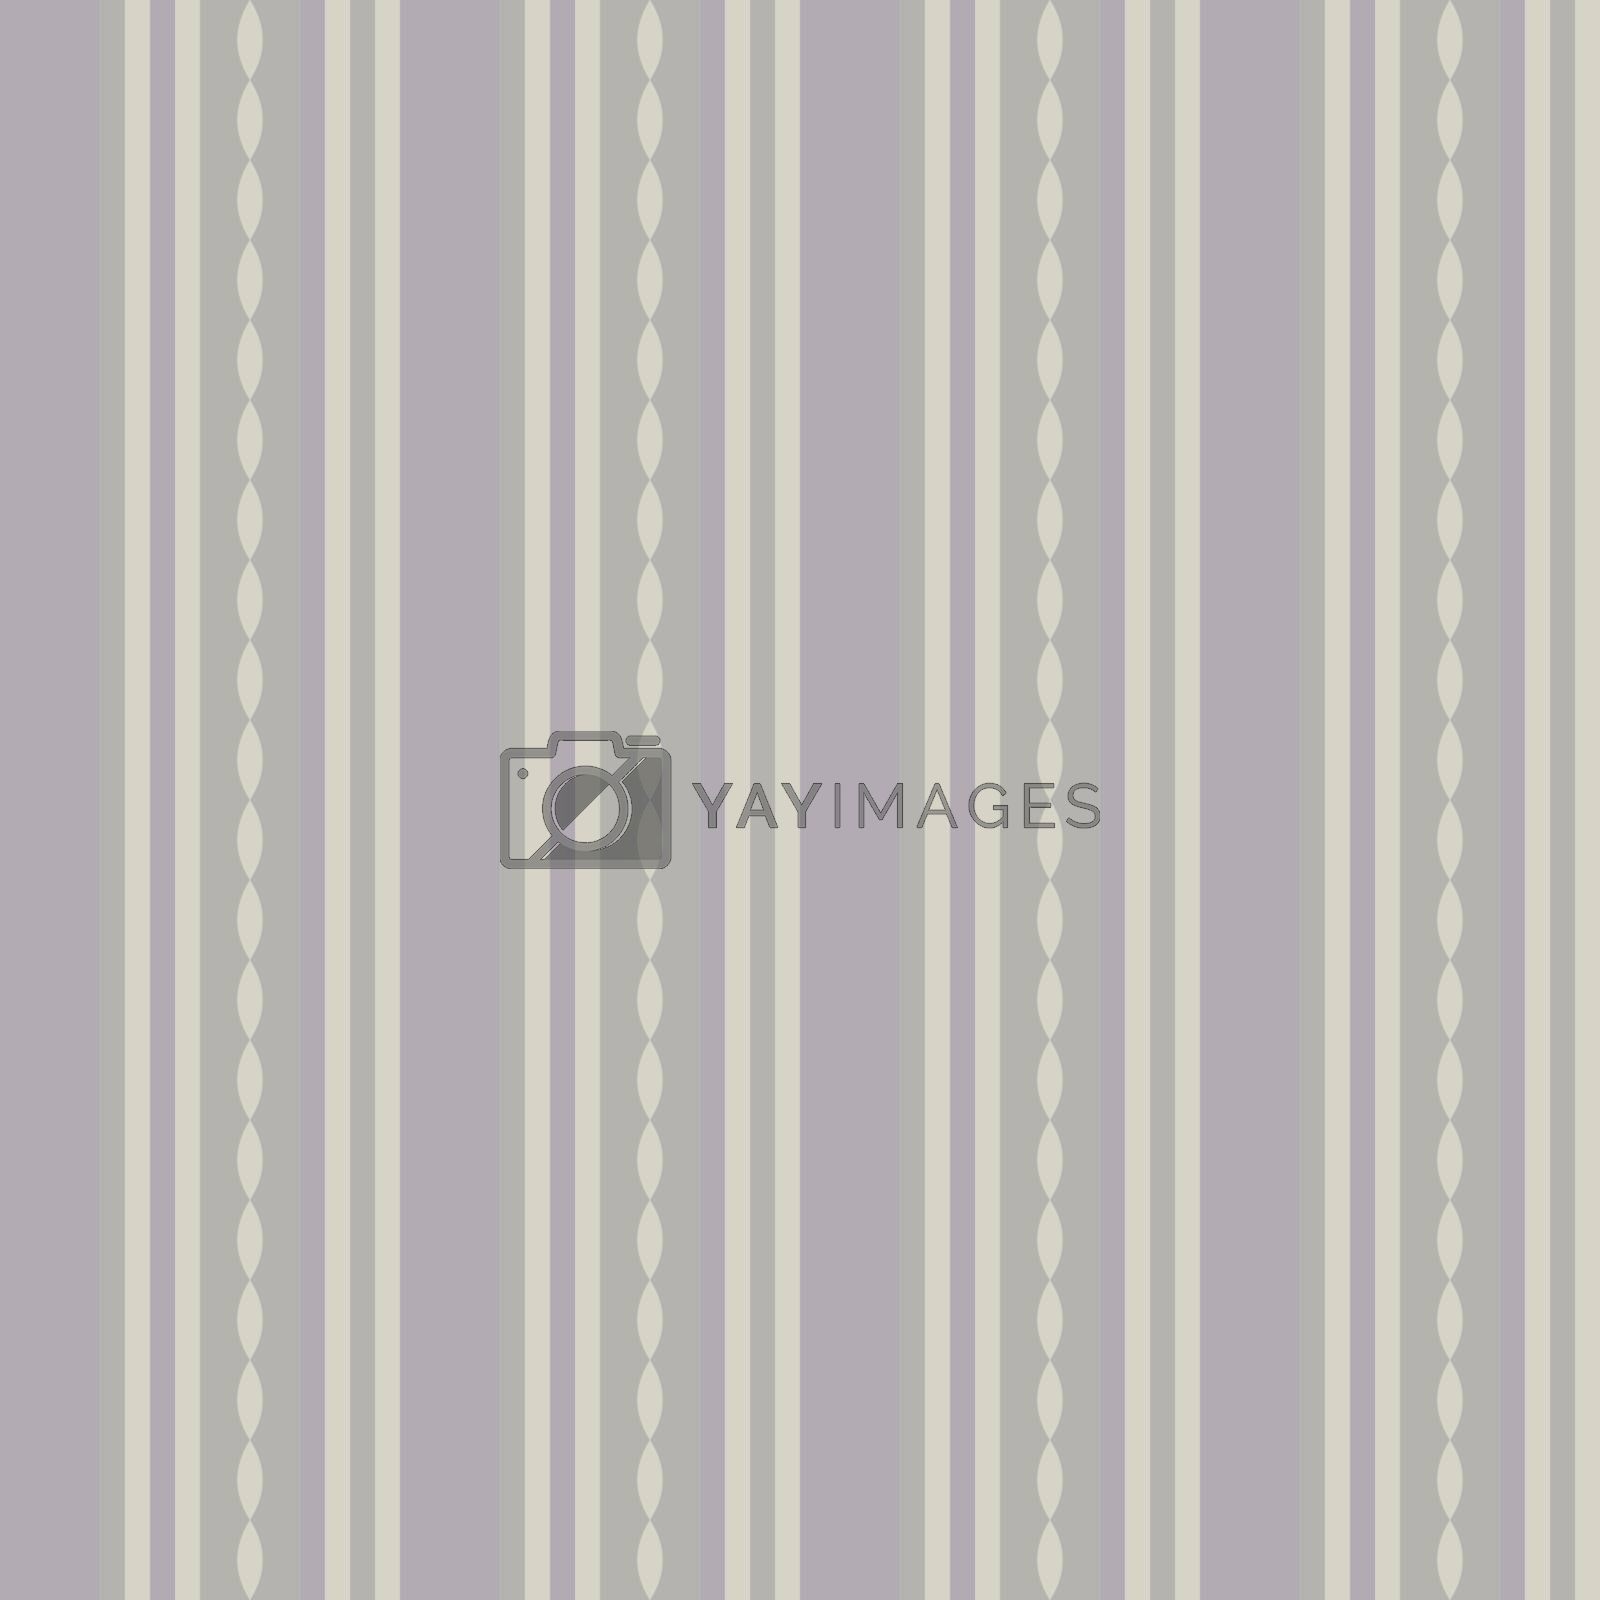 Classic decorative vintage seamless patterns with stripes and waves. Pastel beige, pink striped background in retro style. For greeting cards, invitations, textile fabric, wallpaper or wrapping paper by Henkeova